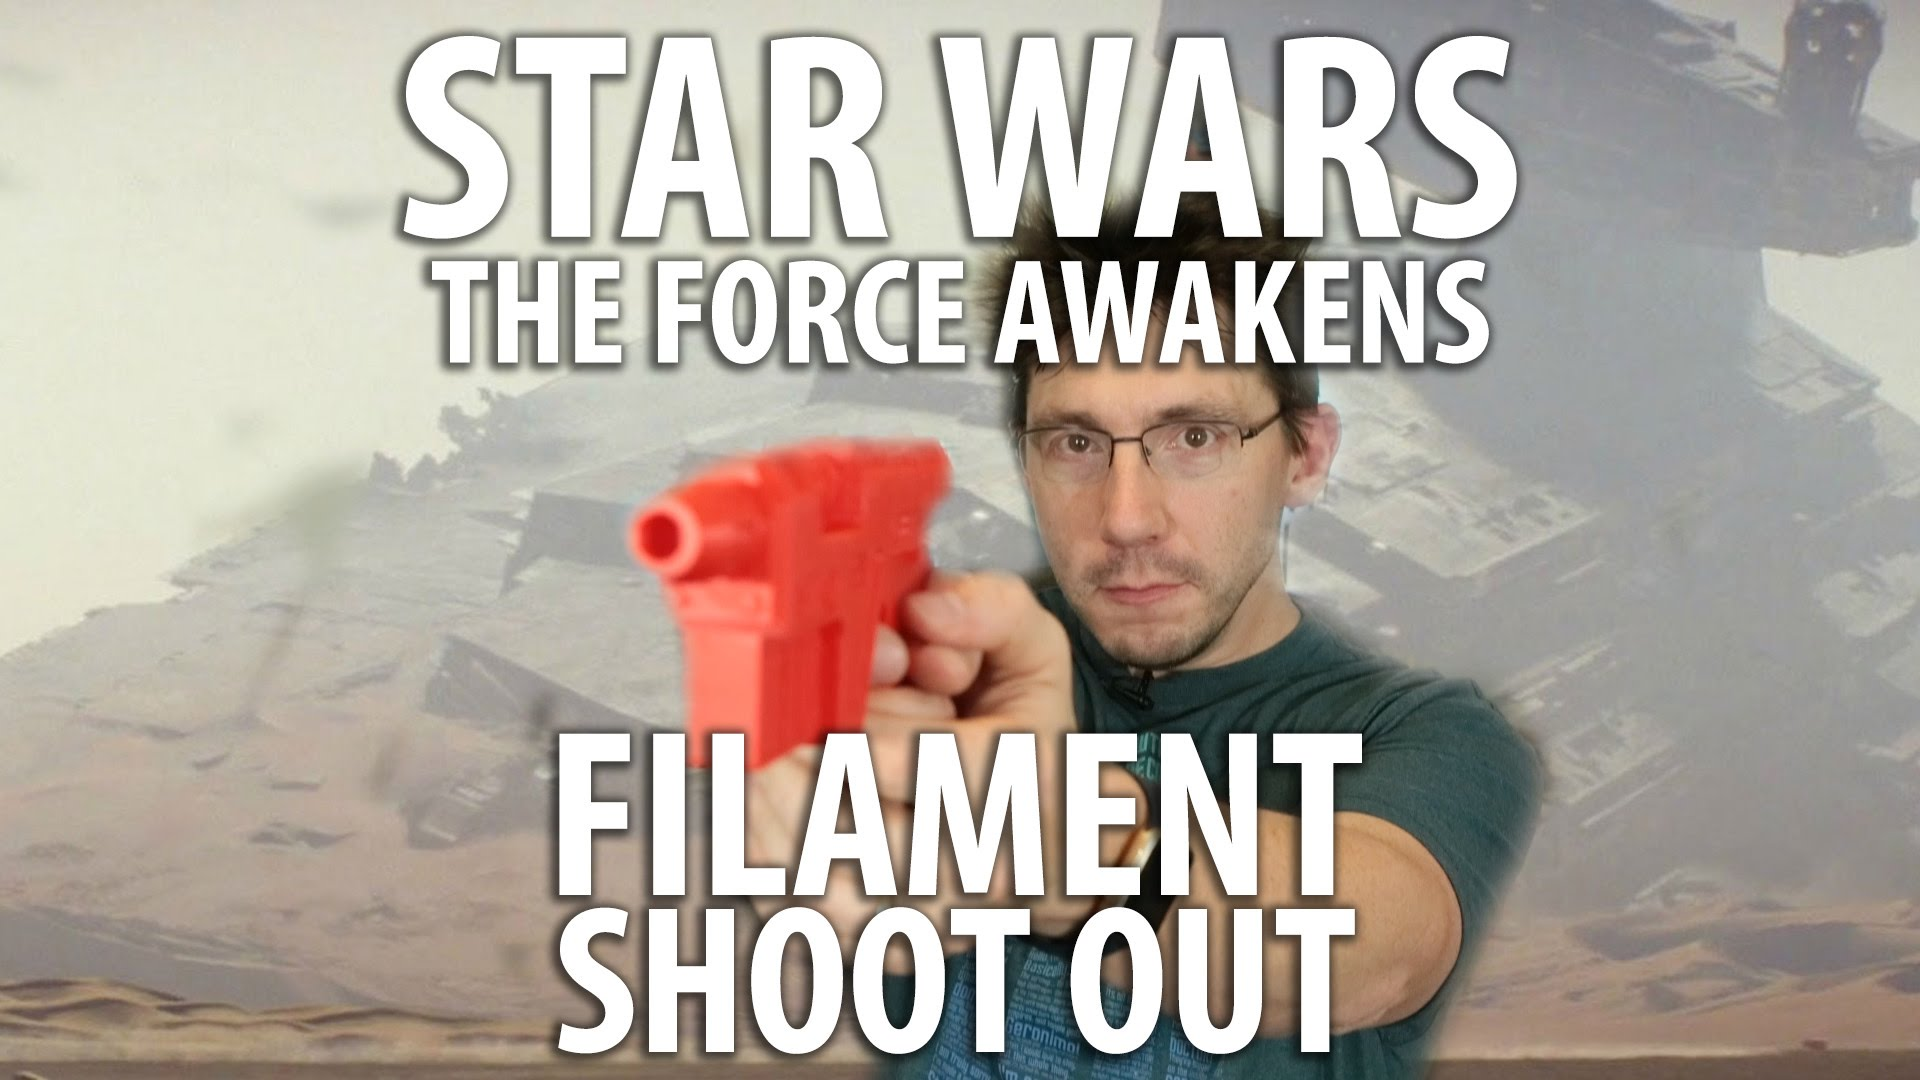 Star Wars Filament Shoot Out [CONTEST]